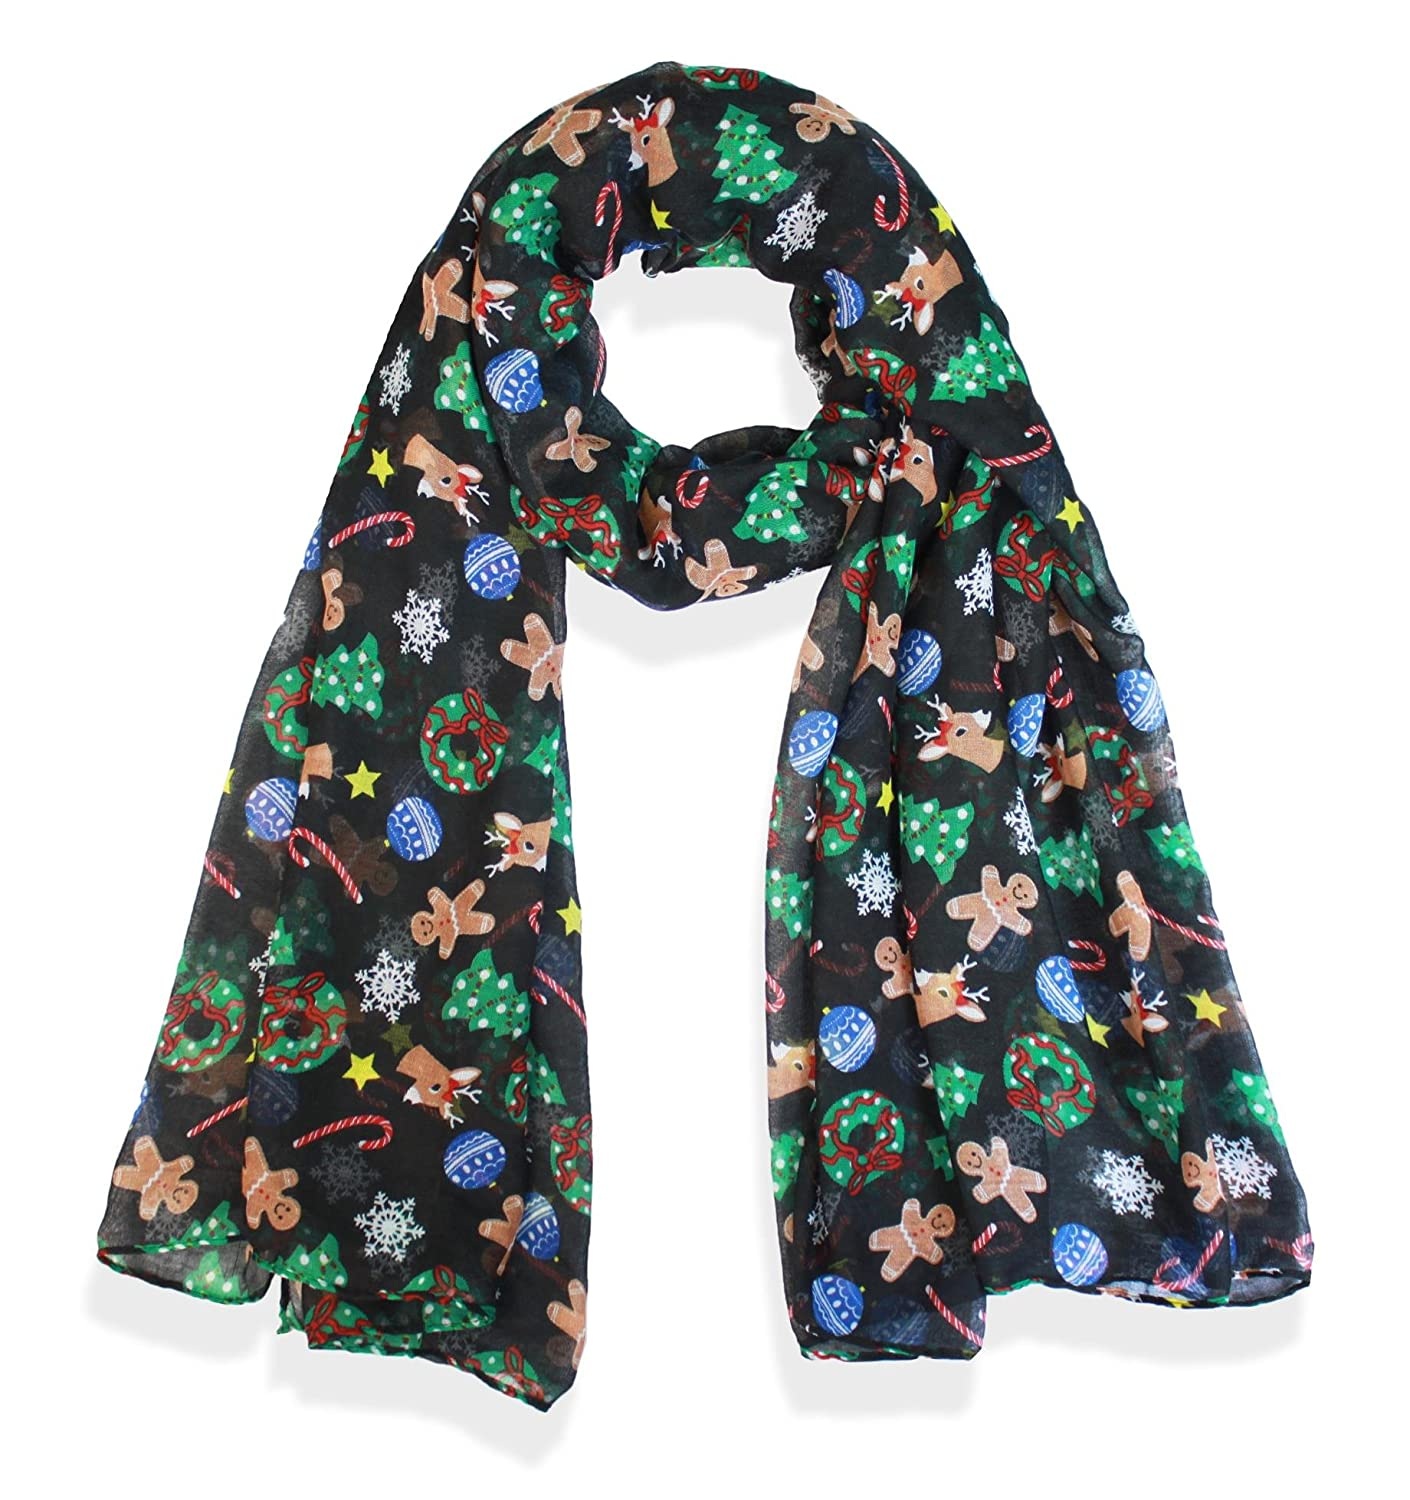 Candy Cane Print Women's Scarf